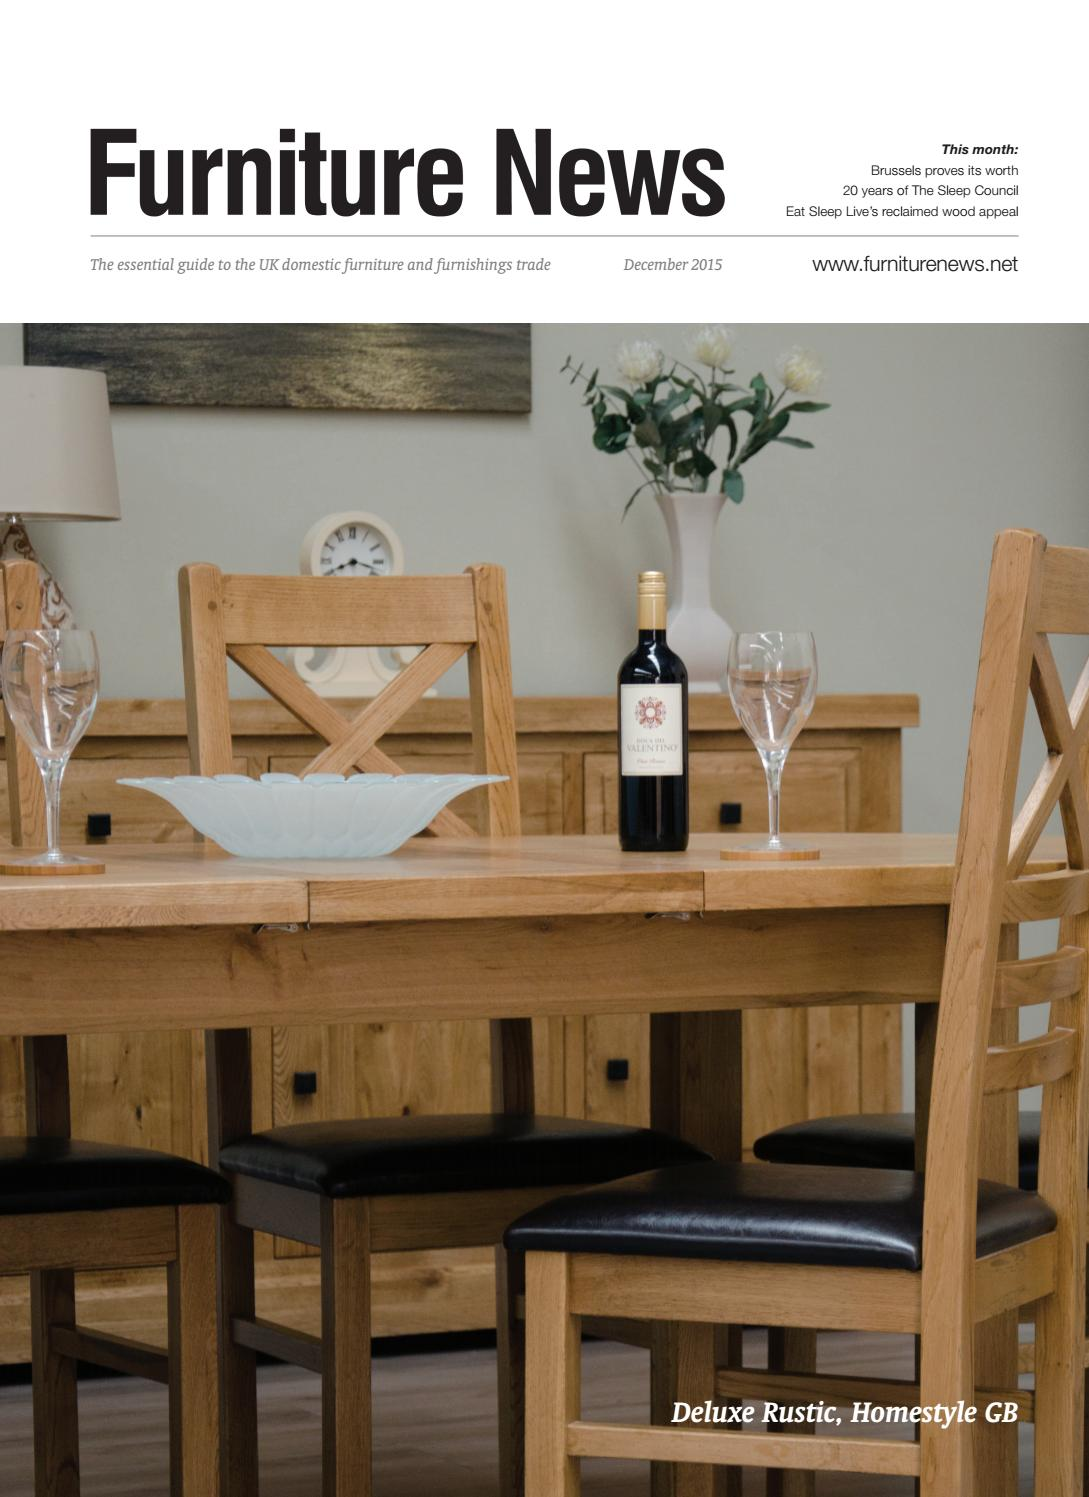 Meubles Rauch France Furniture News 321 By Gearing Media Group Ltd Issuu